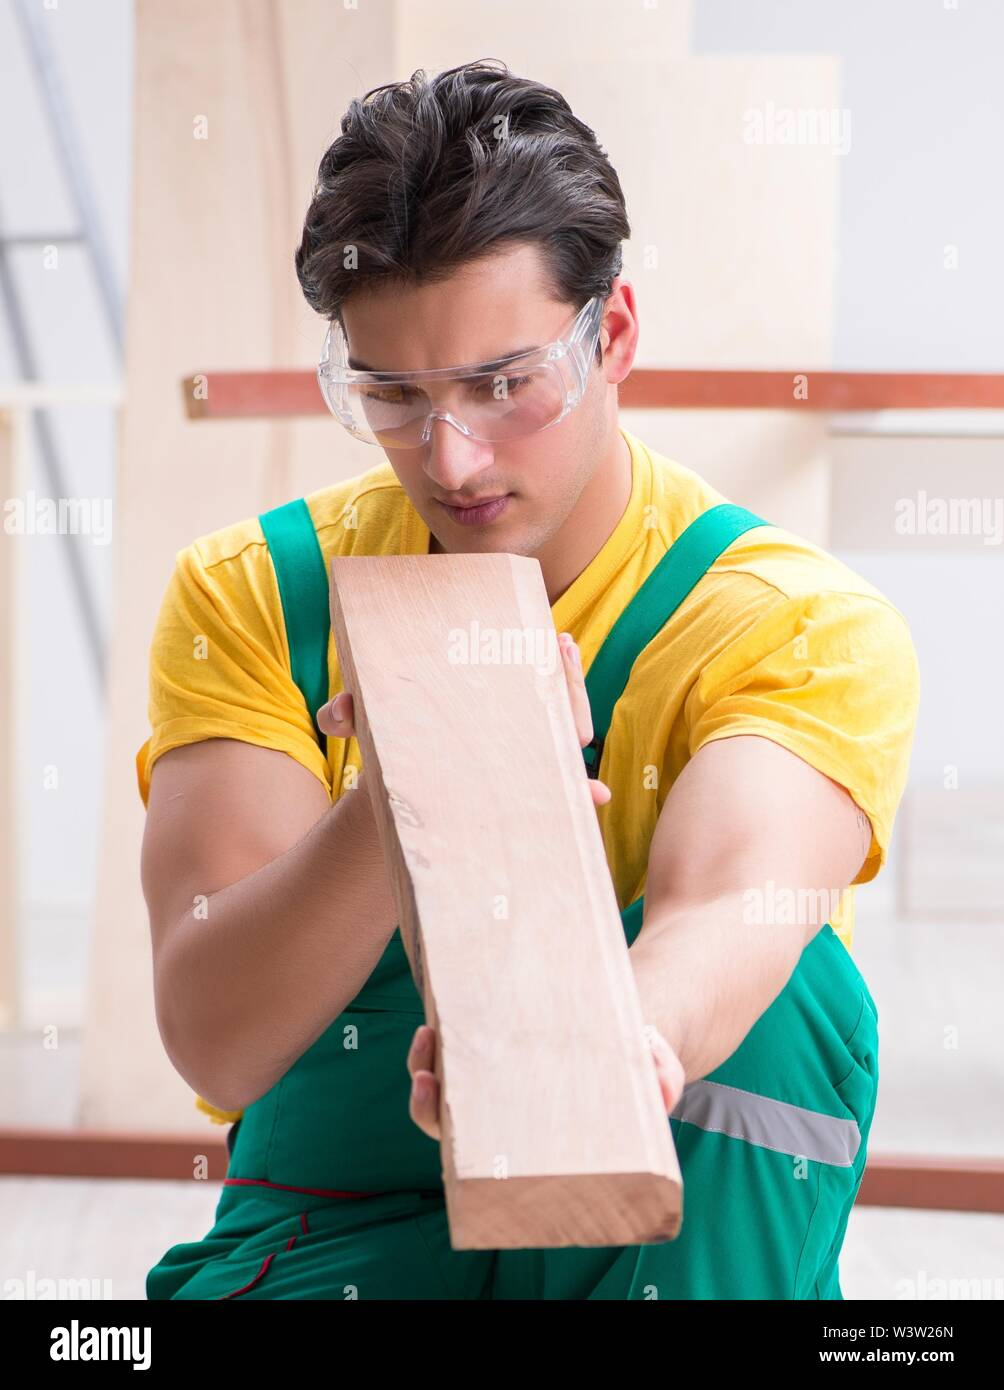 The contractor working on laminate wooden floor - Stock Image